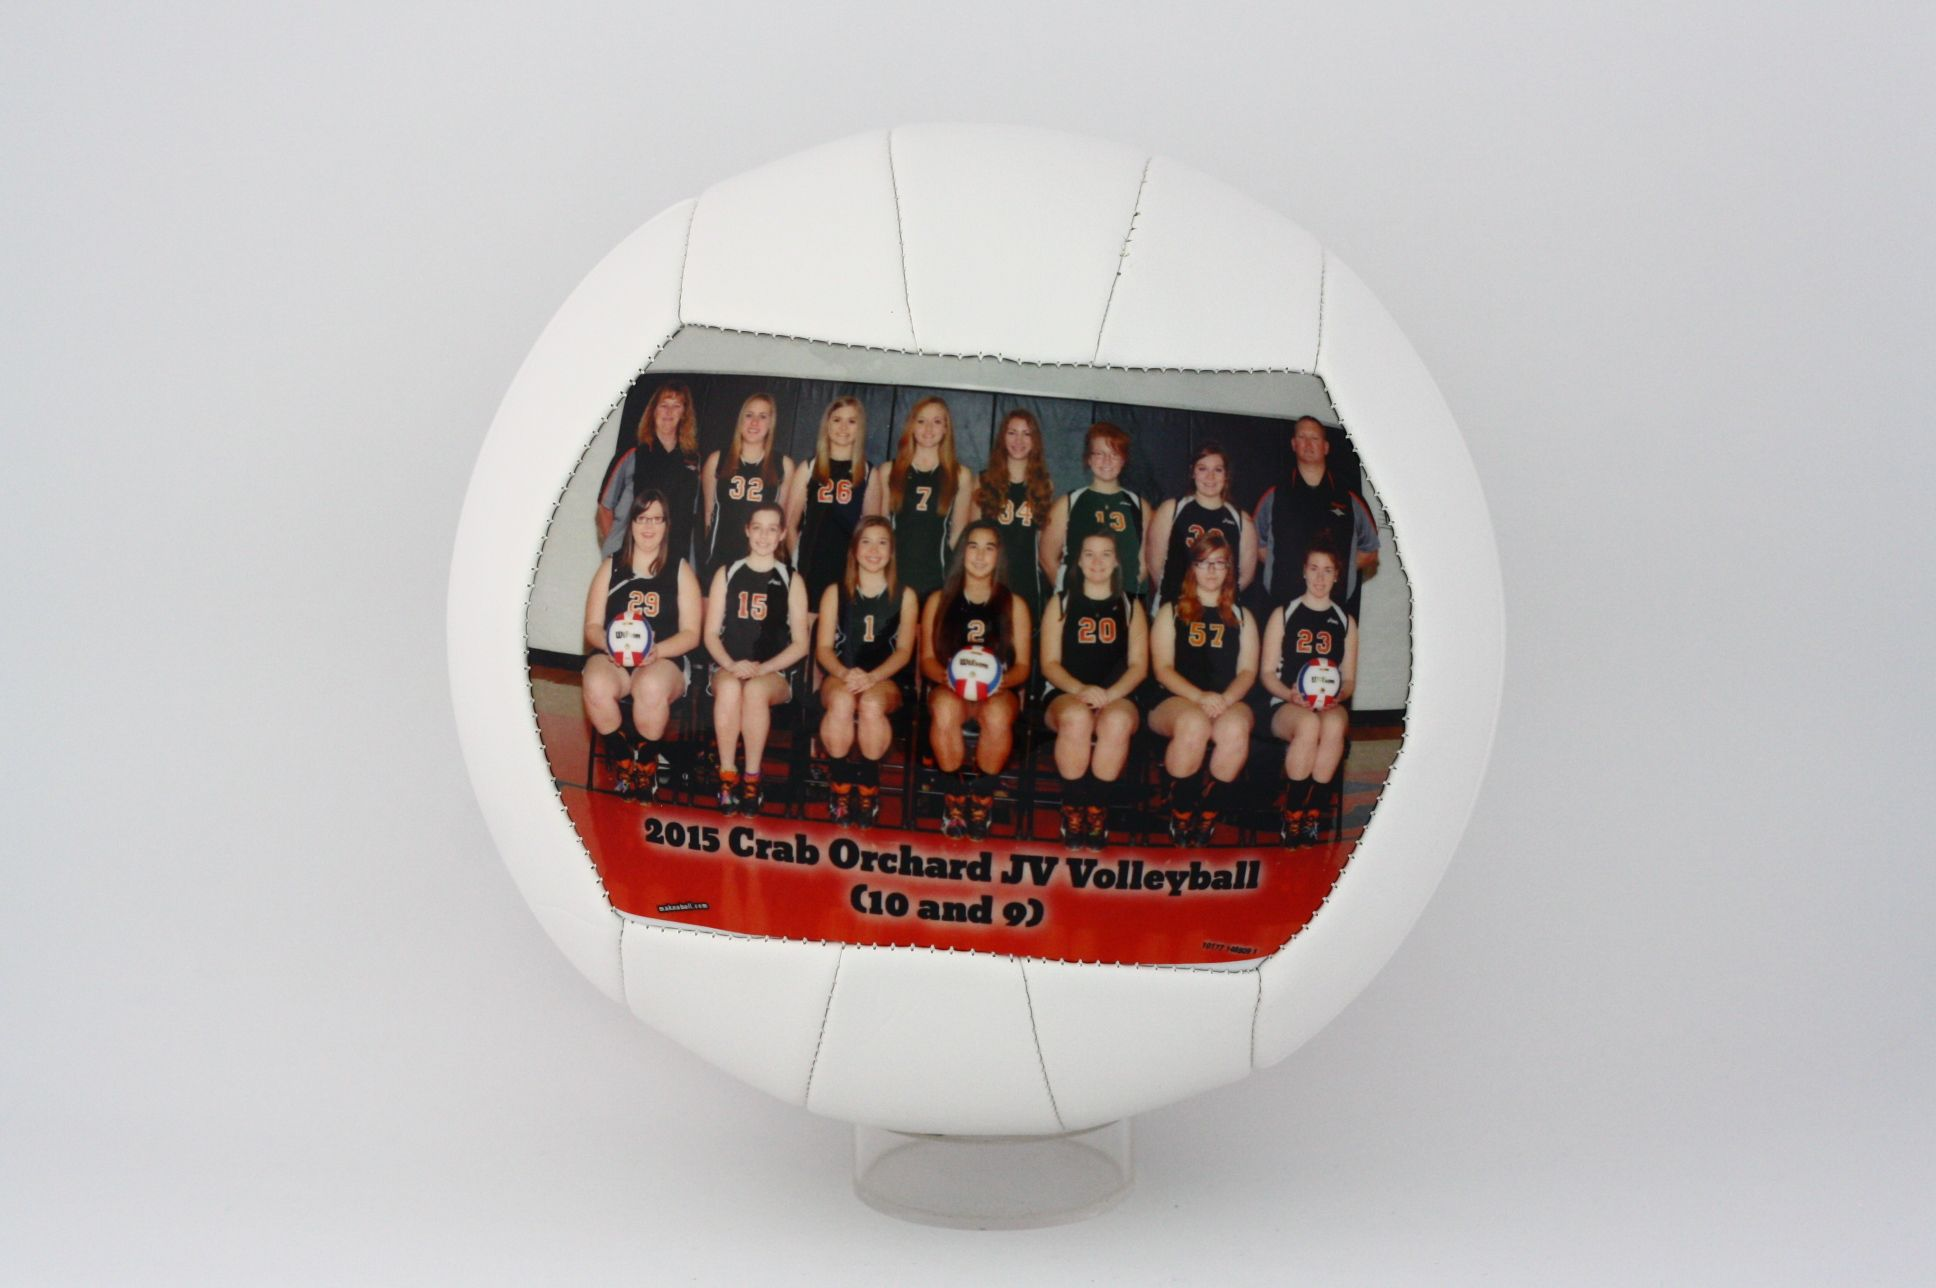 Customized Volleyball For Senior Night Perfect Gift For Volleyball Players Coaches And Teams Only At Make A Ball Volleyball Gifts Coach Gifts Sports Gifts